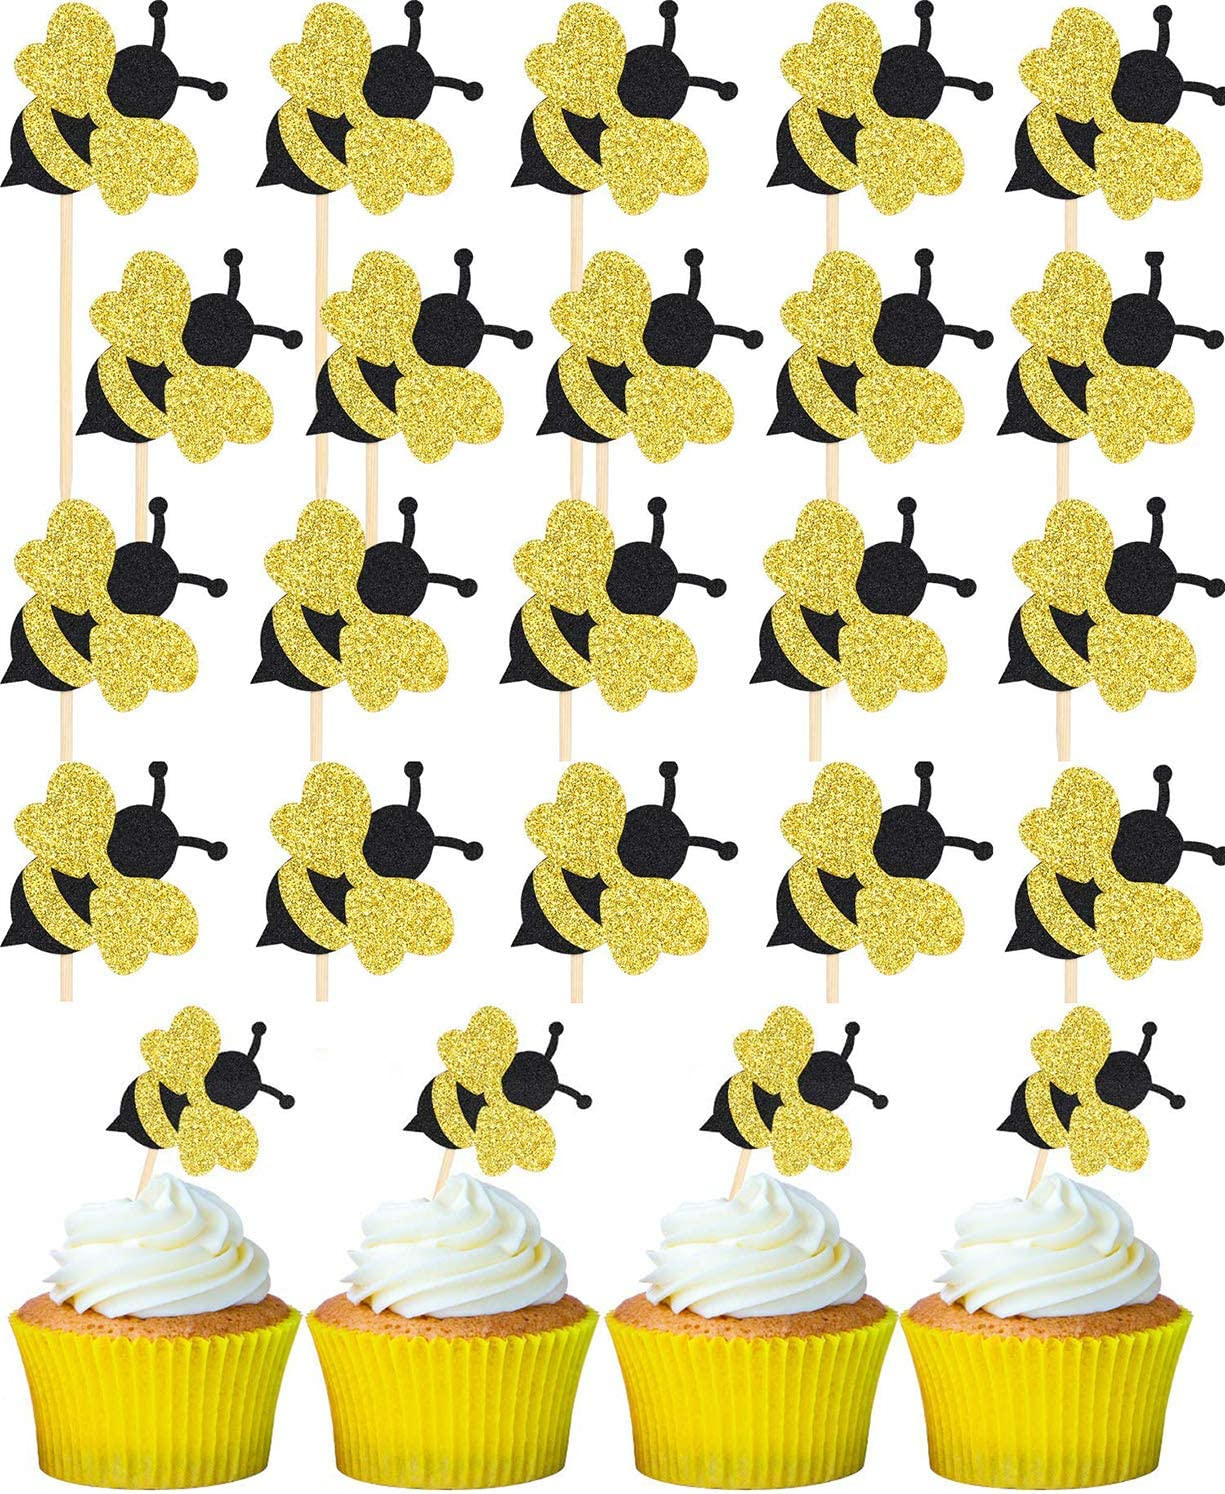 Gold Glitter Bumble Bee Cupcake Toppers Party Favor Decoration Cake Decoration for Birthday Party, Baby Shower, Wedding - 24 Pieces